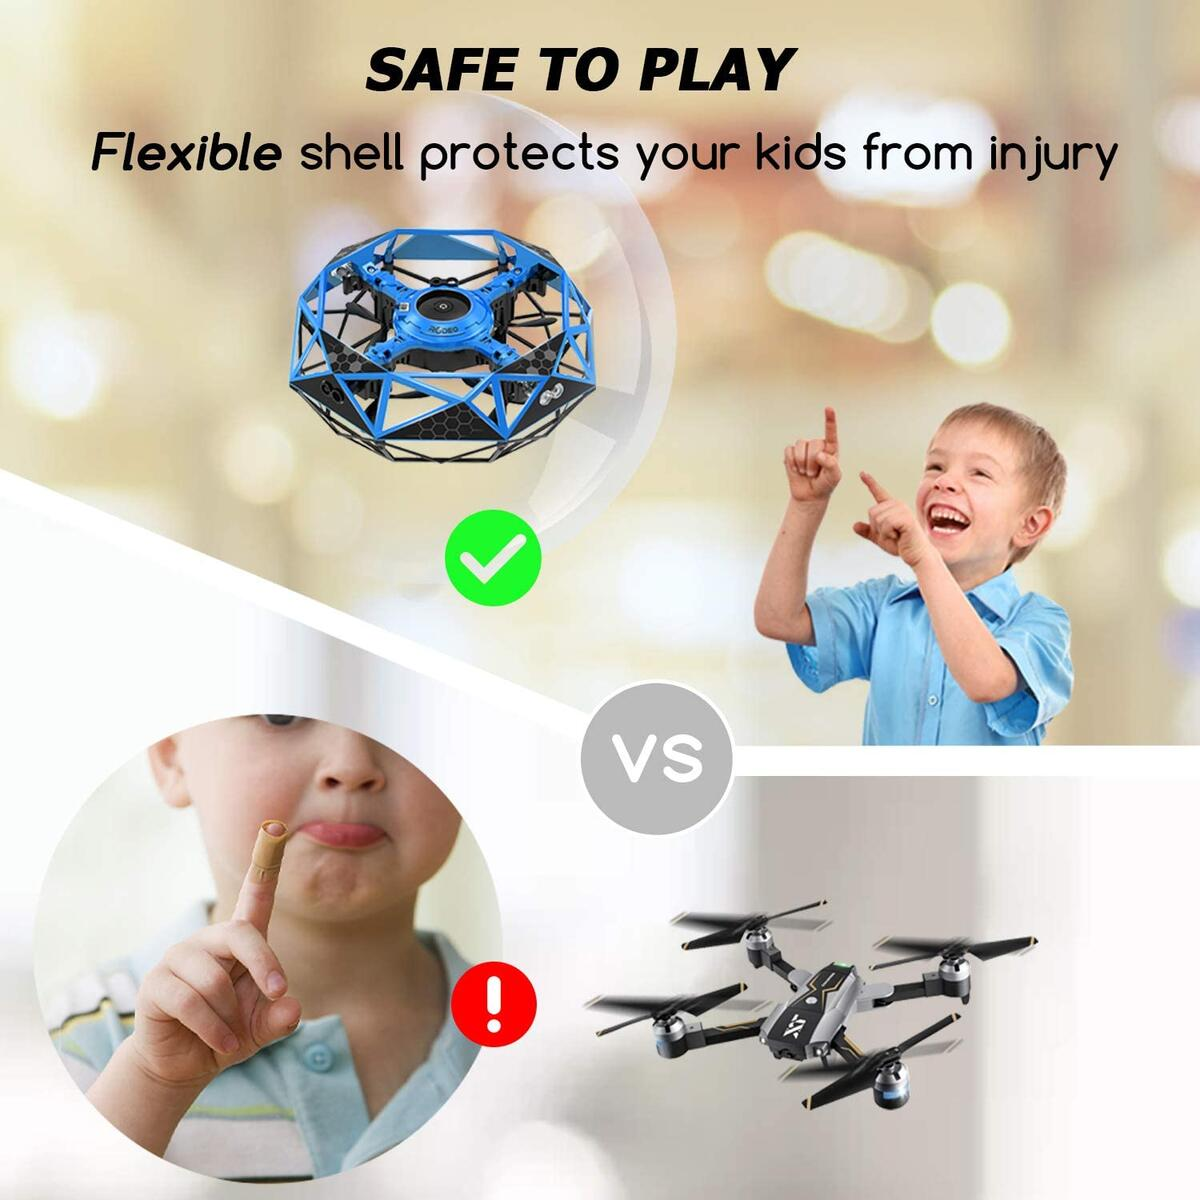 【DON'T USE COUPON!】Hand Operated Drone for Kids Toddlers Adults - Hands Free Mini Drones with 6 Sensors, Easy UFO Flying Ball Toys for Boys and Girls, Self Flying Drone 6 7 8 9 10 11 Years Old Kids